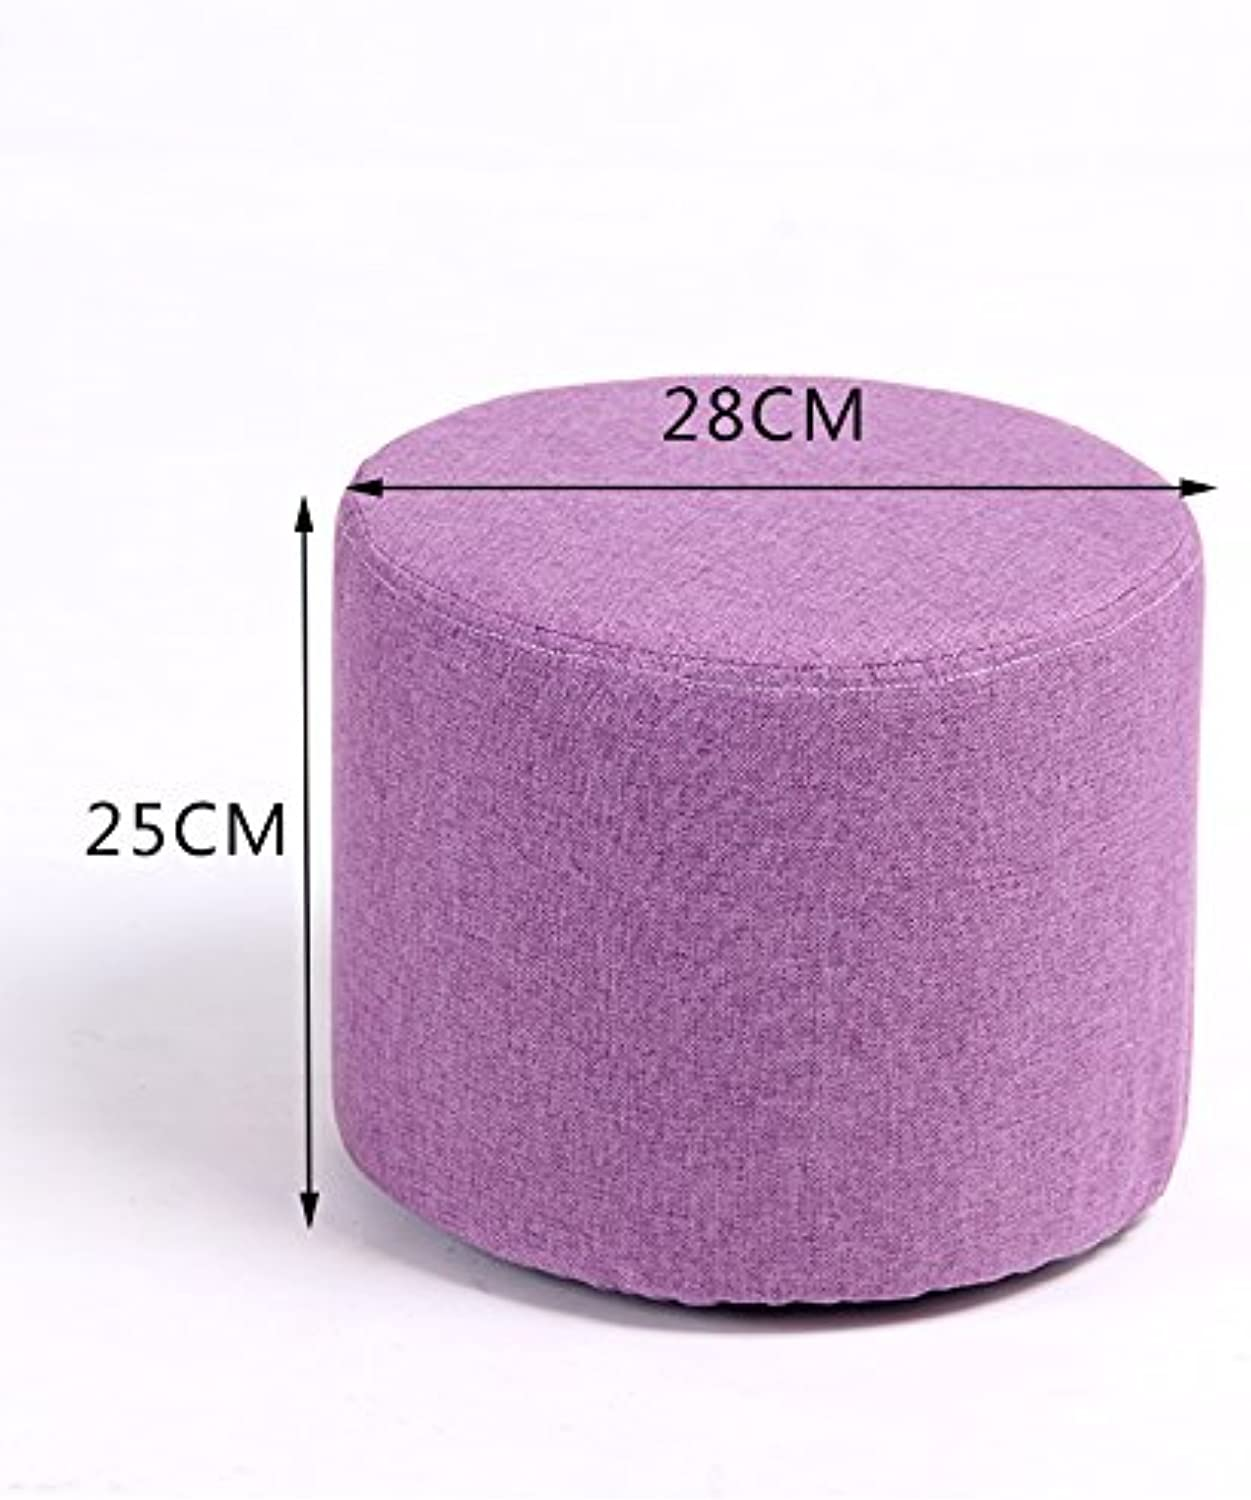 Dana Carrie Stool Stylish Ideas for shoes of Solid Wood Cloth Sofas stools Low stool Round stool wear shoes The Tea Small stools Benches sit Mounds of 25  28cm in Purple